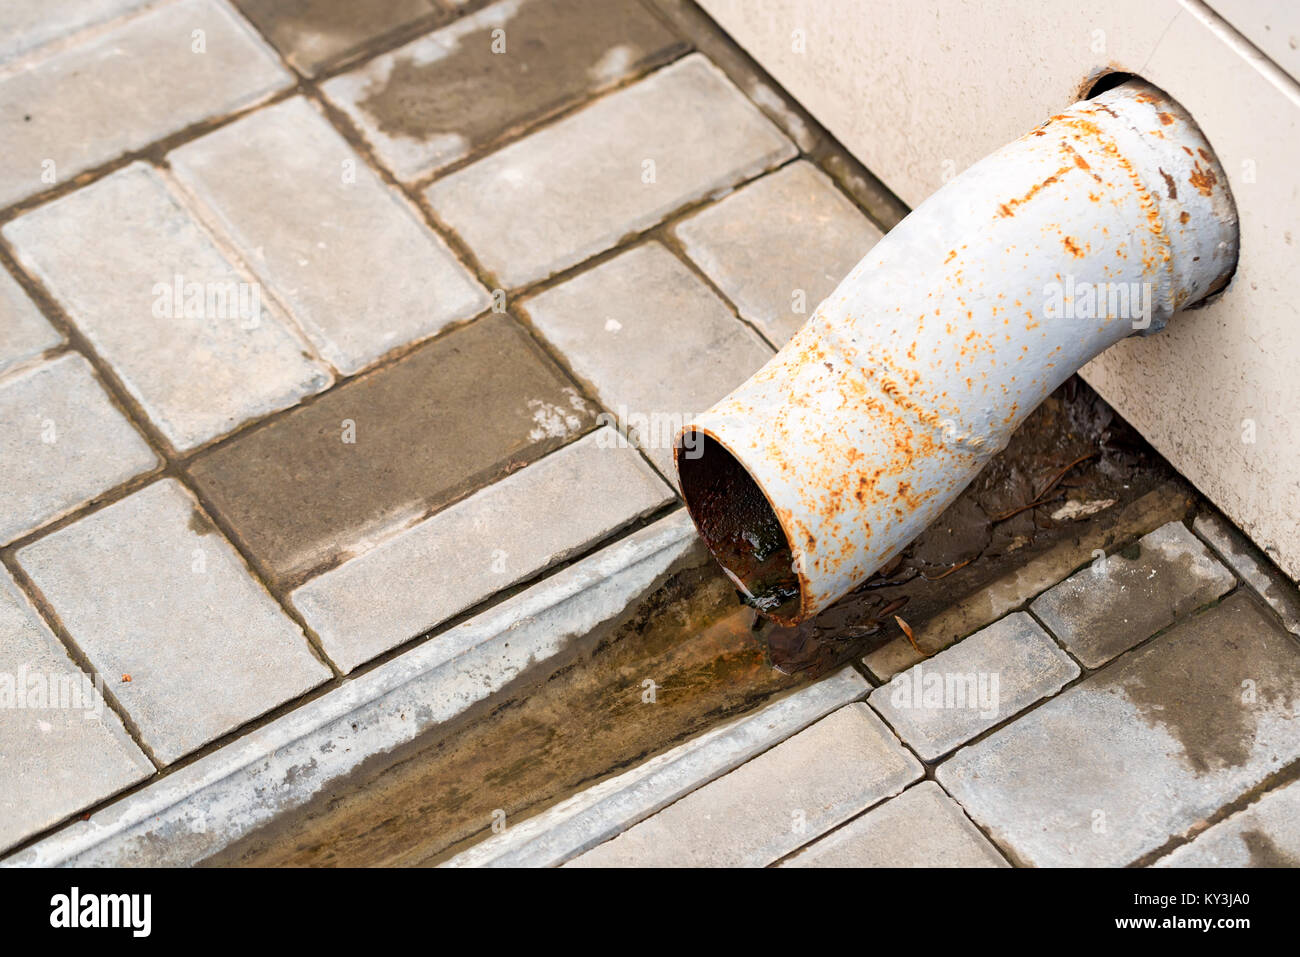 Small drain water pipe and pavement outdoors - Stock Image